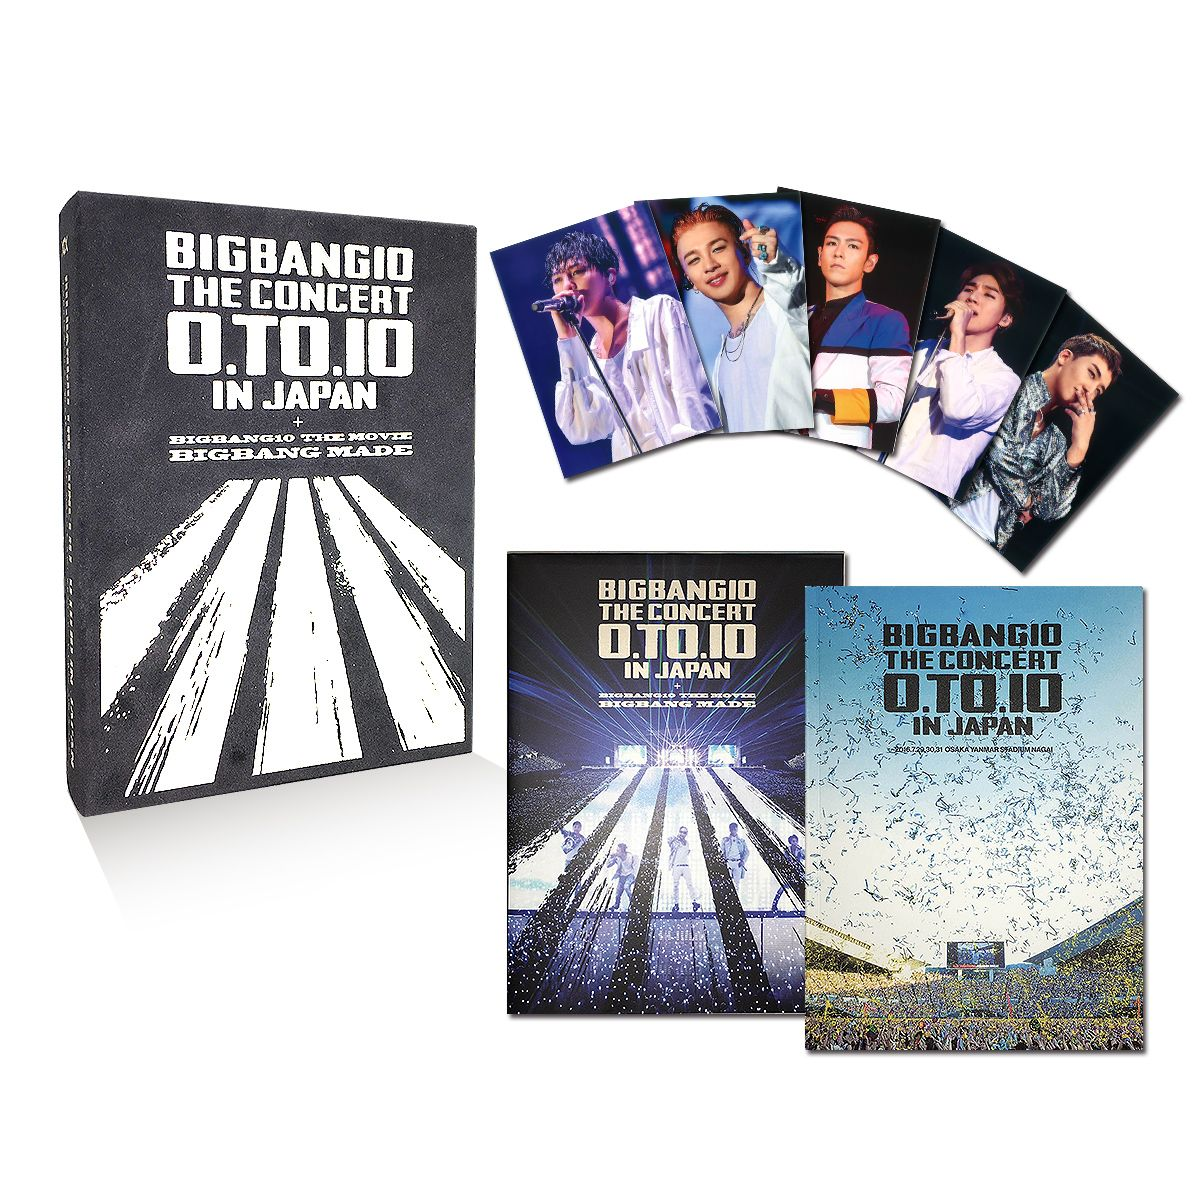 BIGBANG10 THE CONCERT : 0.TO.10 IN JAPAN + BIGBANG10 THE MOVIE BIGBANG MADE[DVD(4枚組)+LIVE CD(2枚組)+PHOTO BOOK+スマプラムービー&ミュージック] -DELUXE EDITION-(初回生産限定)画像